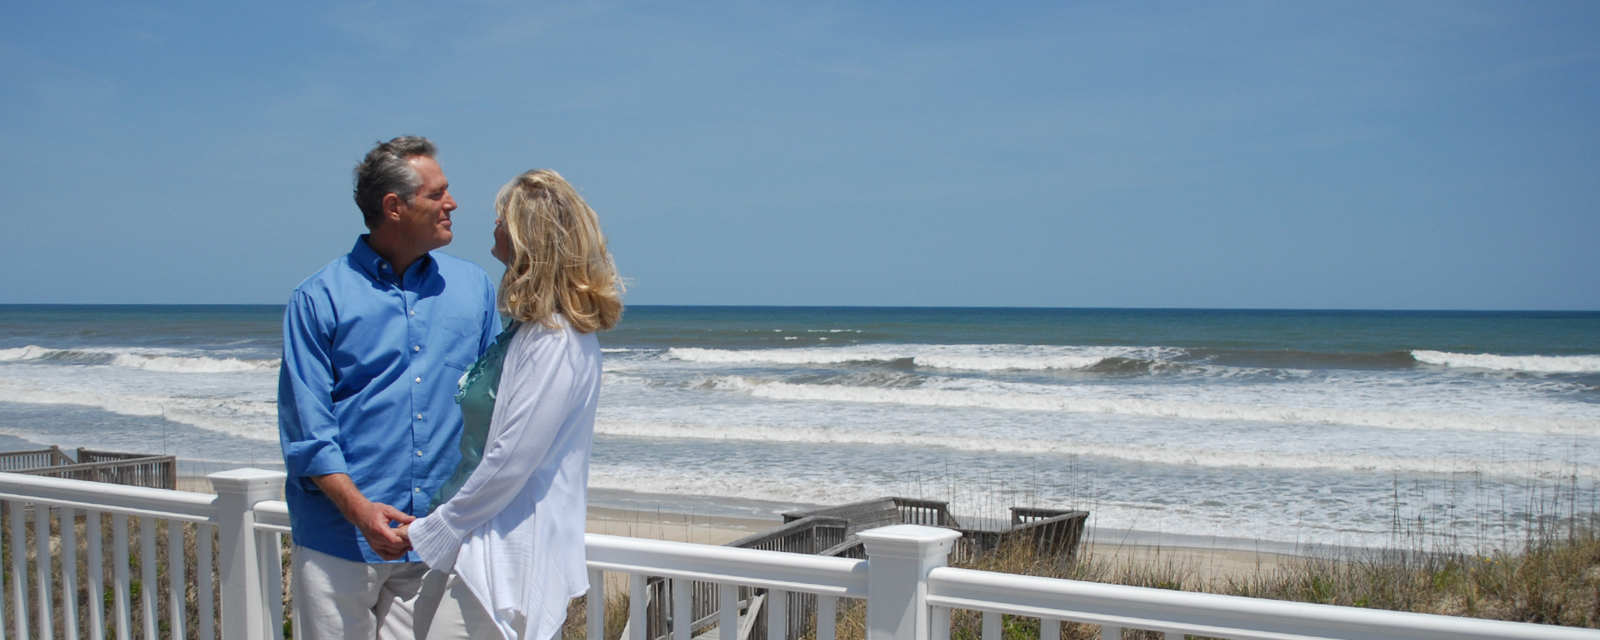 Couples Are Discovering the Pristine Beauty of Currituck Outer Banks; Why Not You?